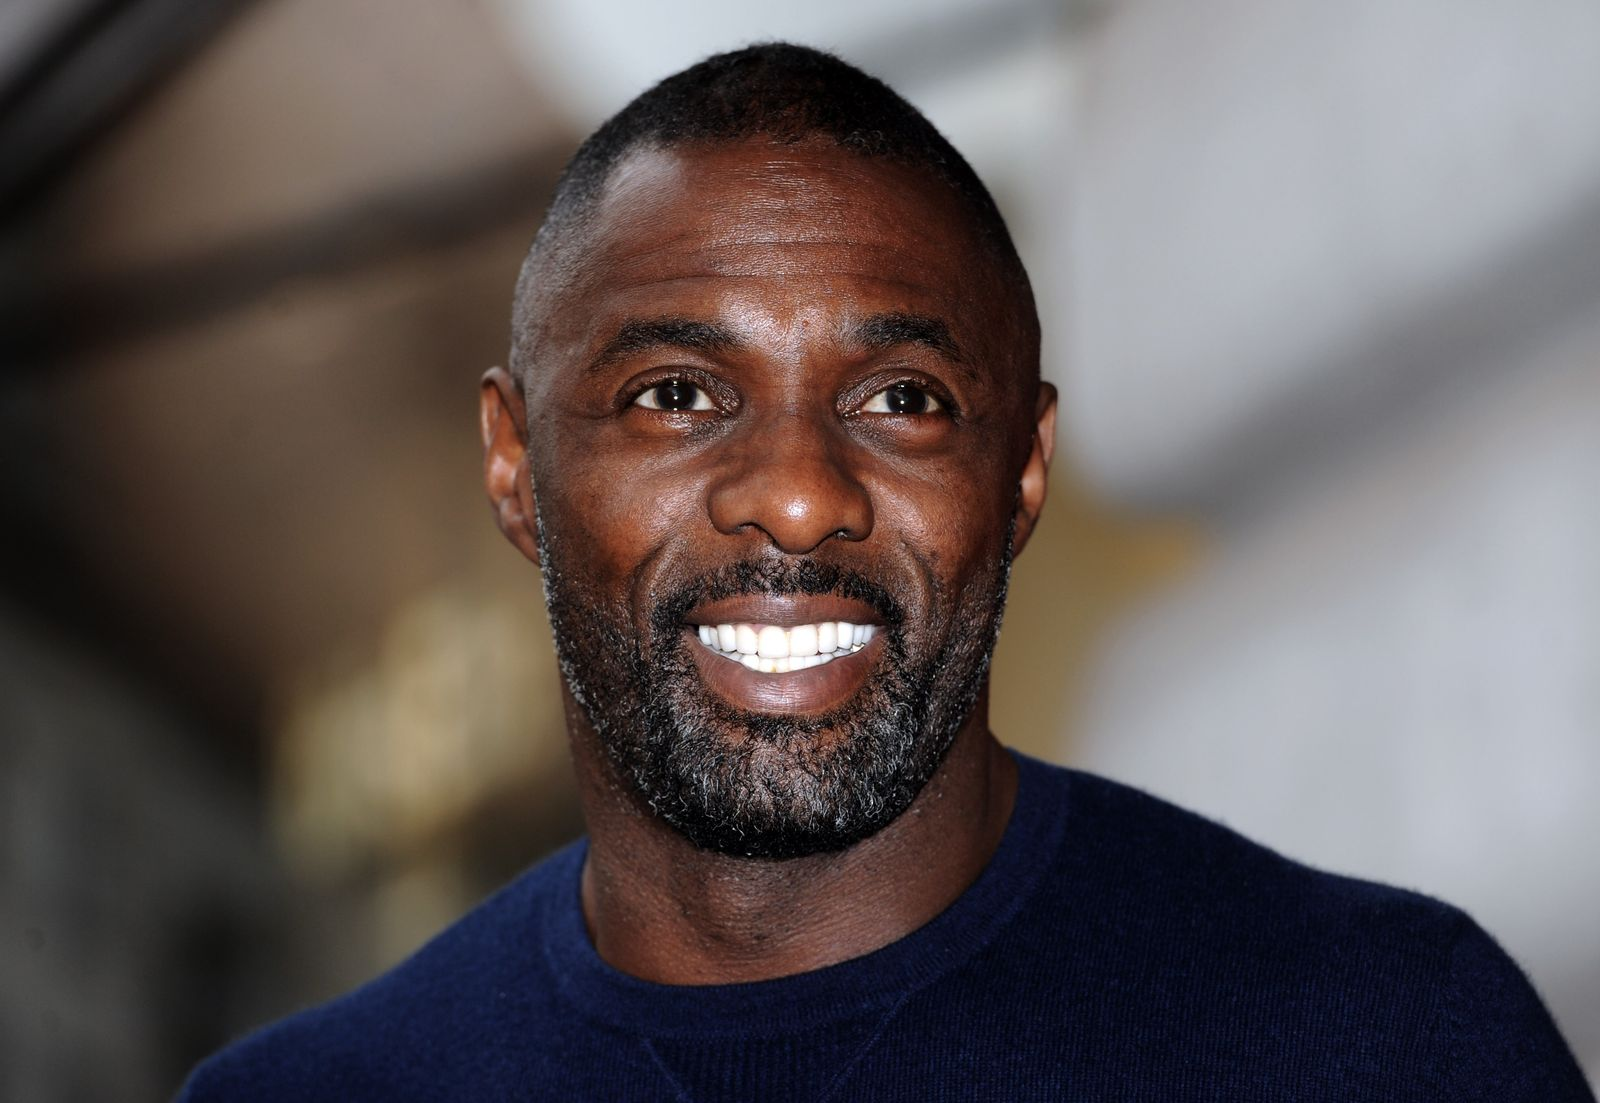 Idris Elba attends a photocall to launch the Superdry AW15 Premium Menswear collection at Superdry International Showroom on November 26, 2015  | Photo: Getty Images